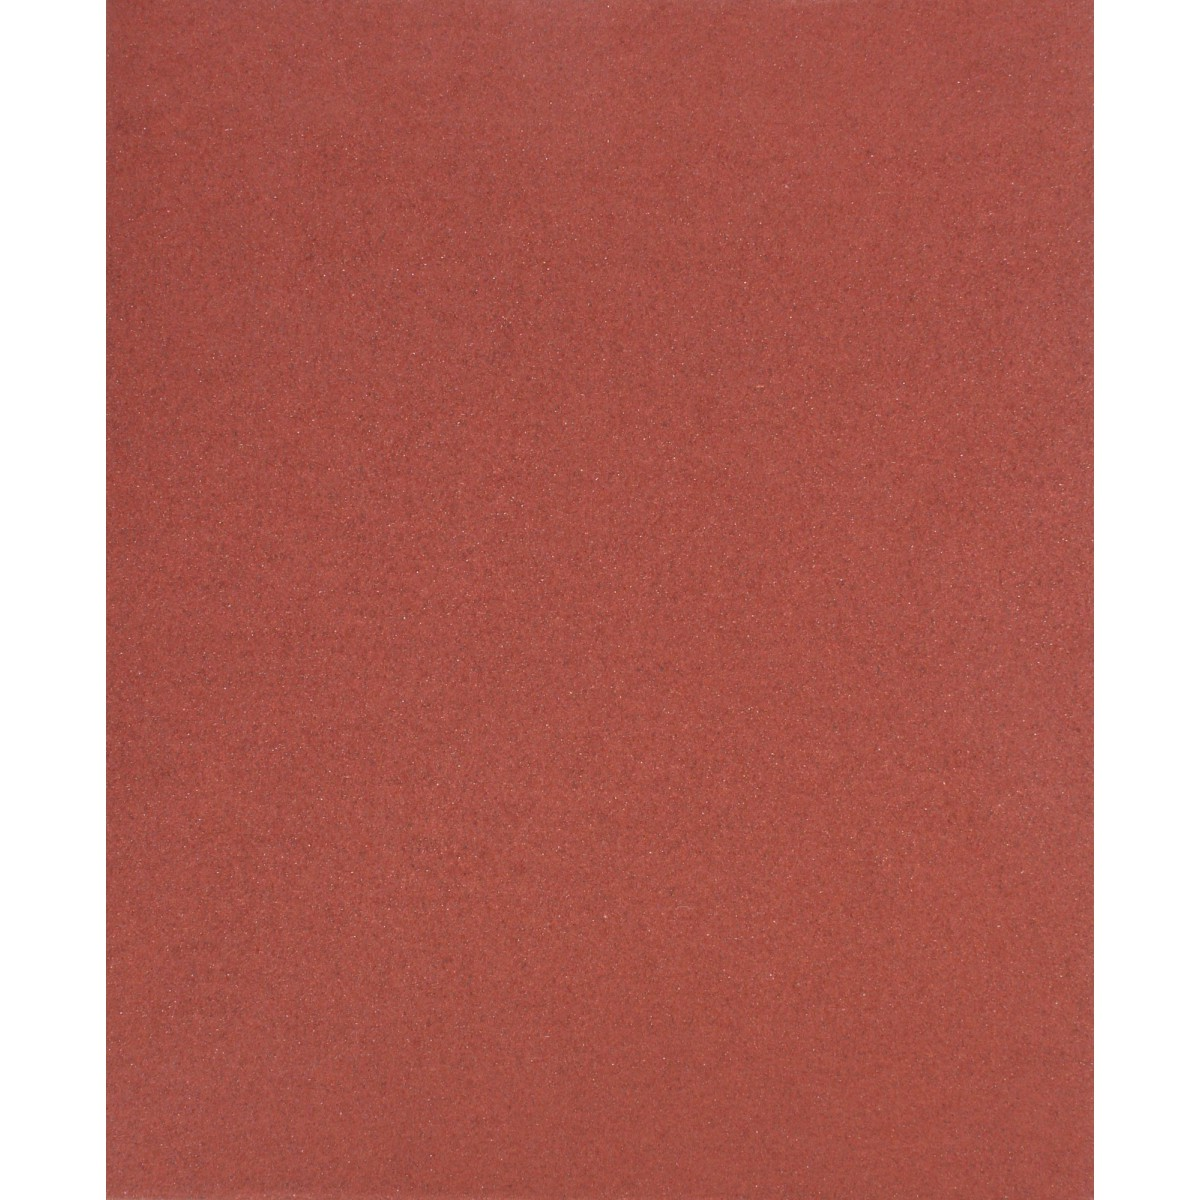 Papier corindon 230 x 280 mm SCID - Grain 120 - Vendu par 1